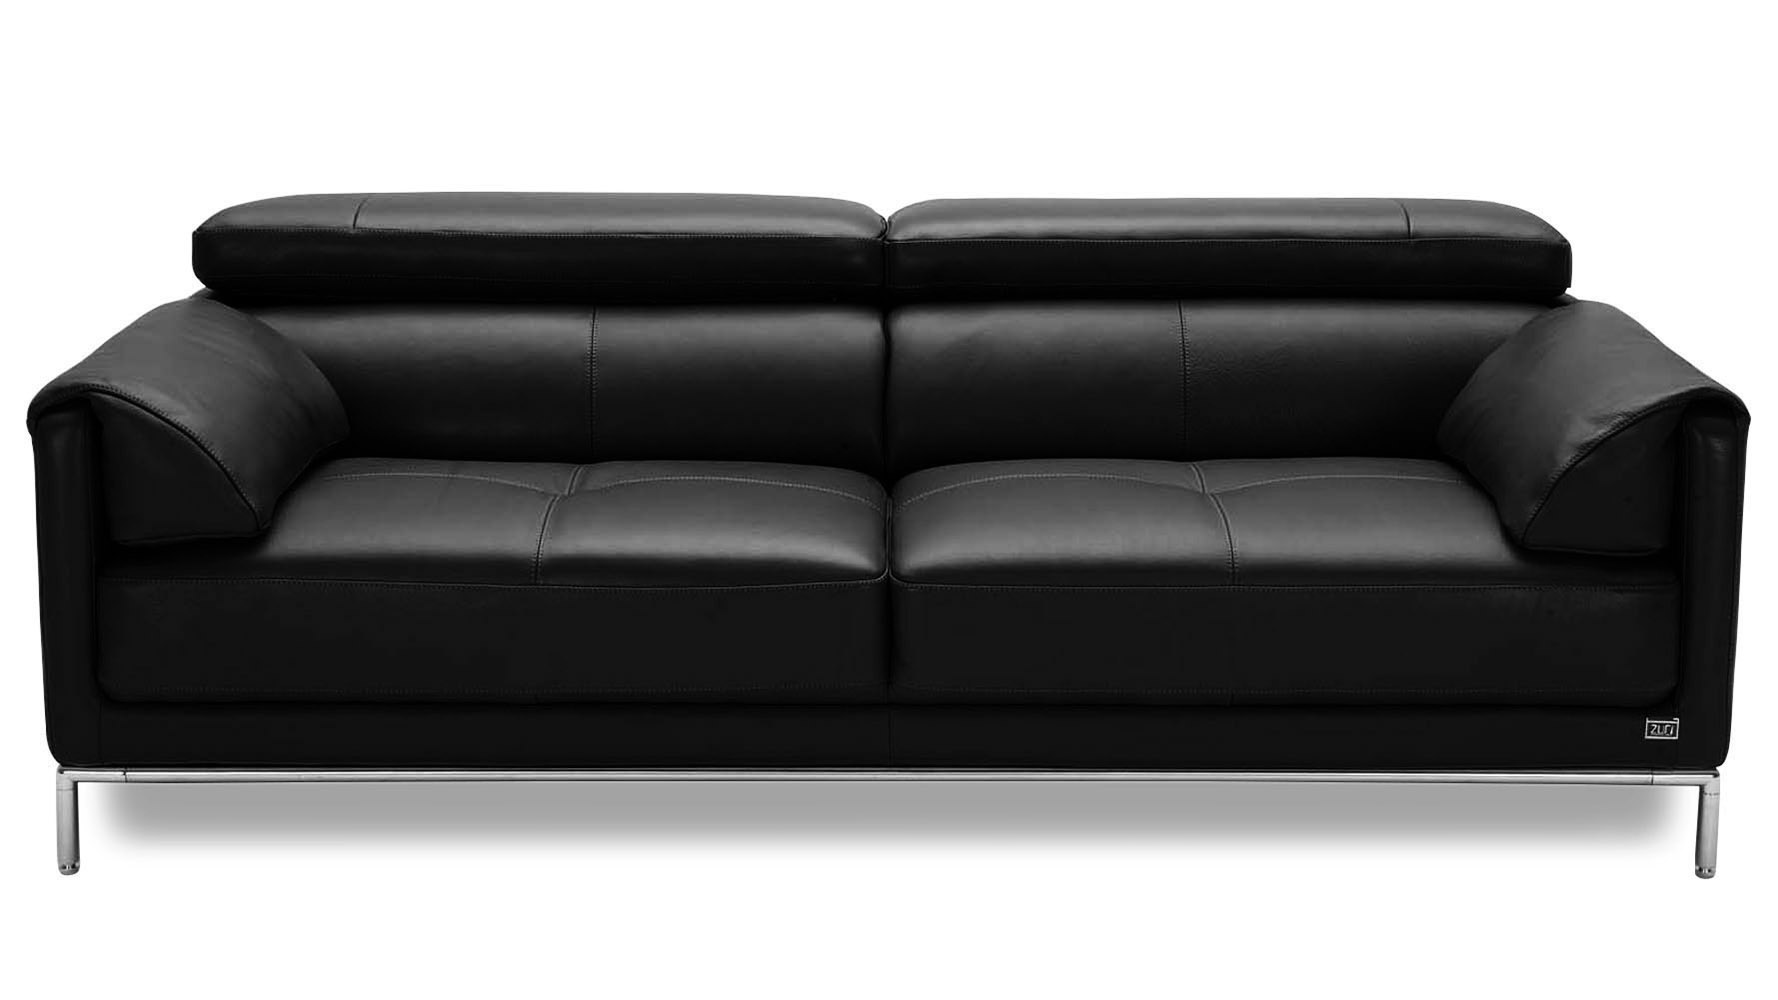 newton rolled arm sofa chaise convertible bed reviews colorful black and white sofas settees couches more ikea thesofa